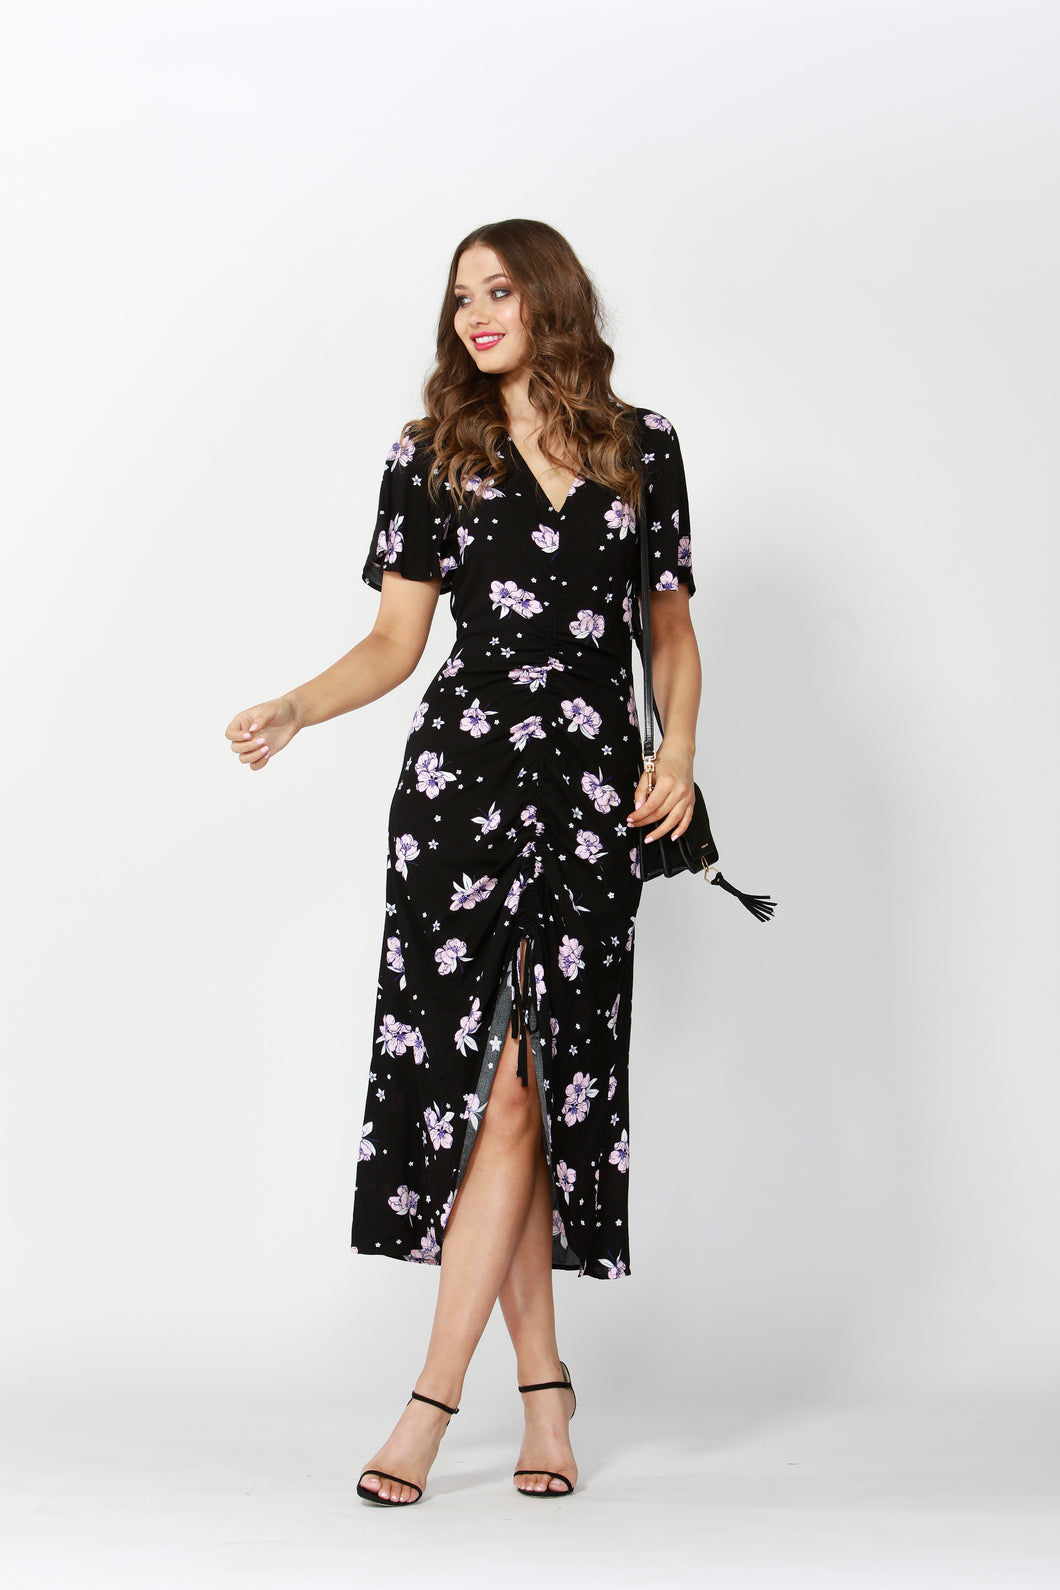 Sass Floral Bouquet Rouched Dress